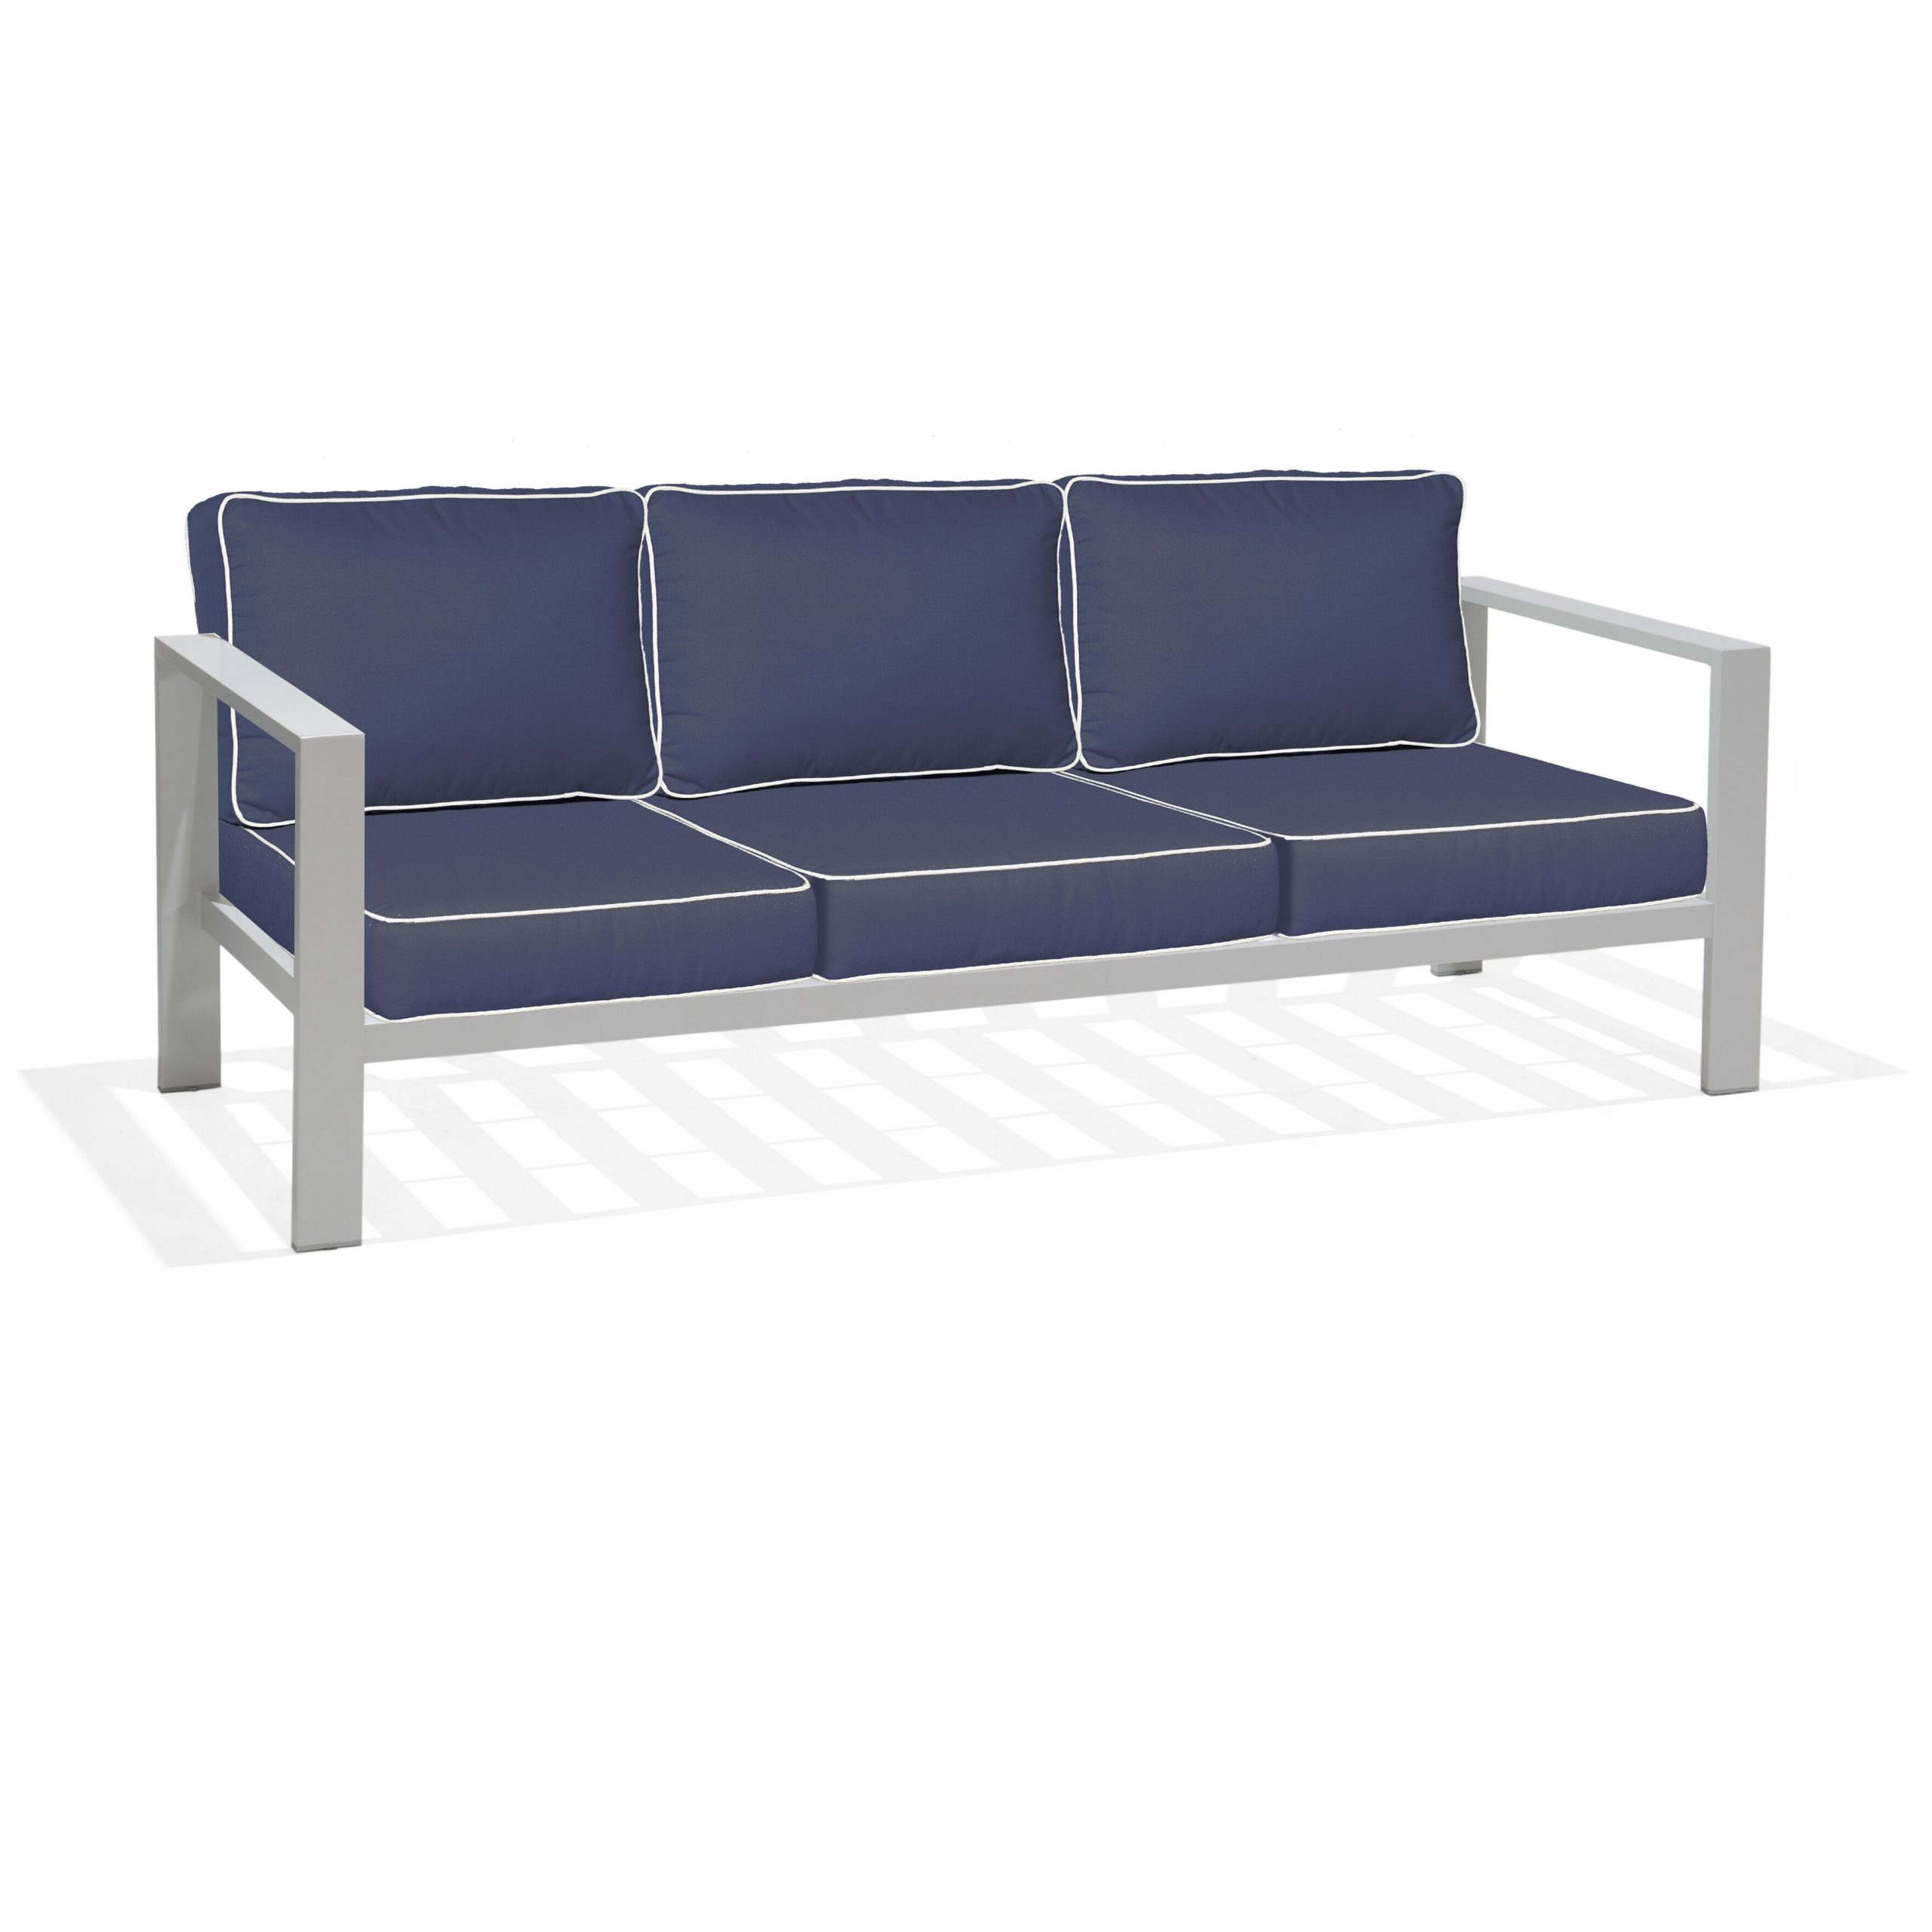 Lincoln Park Sofa With Sunbrella Cushions For Fashionable Zeman Ultra Comfortable Upholstered Anodized Aluminum Loveseats With Cushion (View 11 of 25)